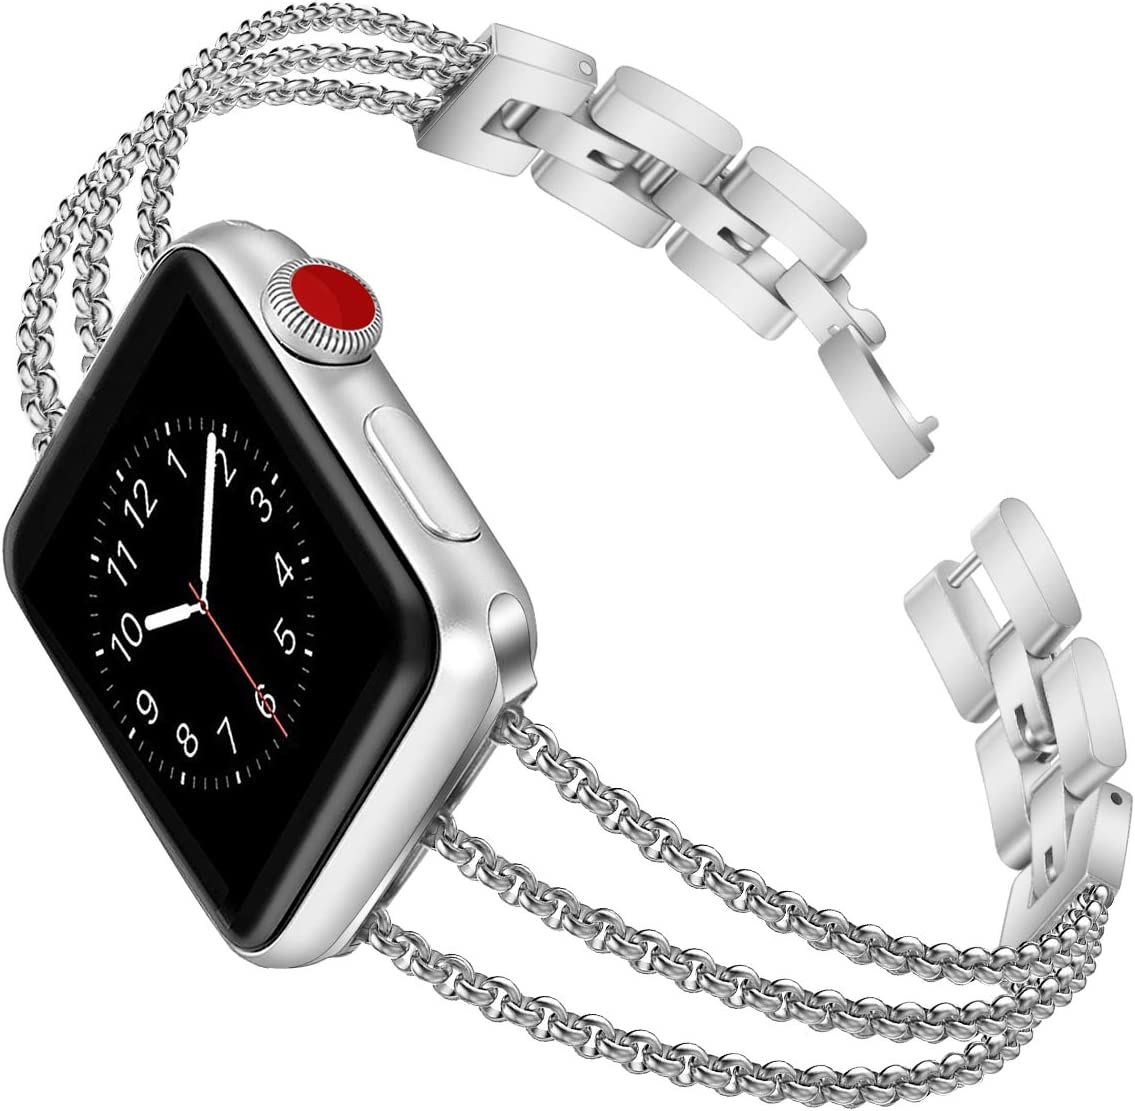 Biaoge Metal Band Compatible for Apple Watch Band Series 4 40mm 44mm/ iWatch Series 6 SE 5 3 2 1 38mm 42mm, Adjustable Stainless Steel Replacement Wristband Strap Cuff Bangle Bracelet (Silver, 38mm)